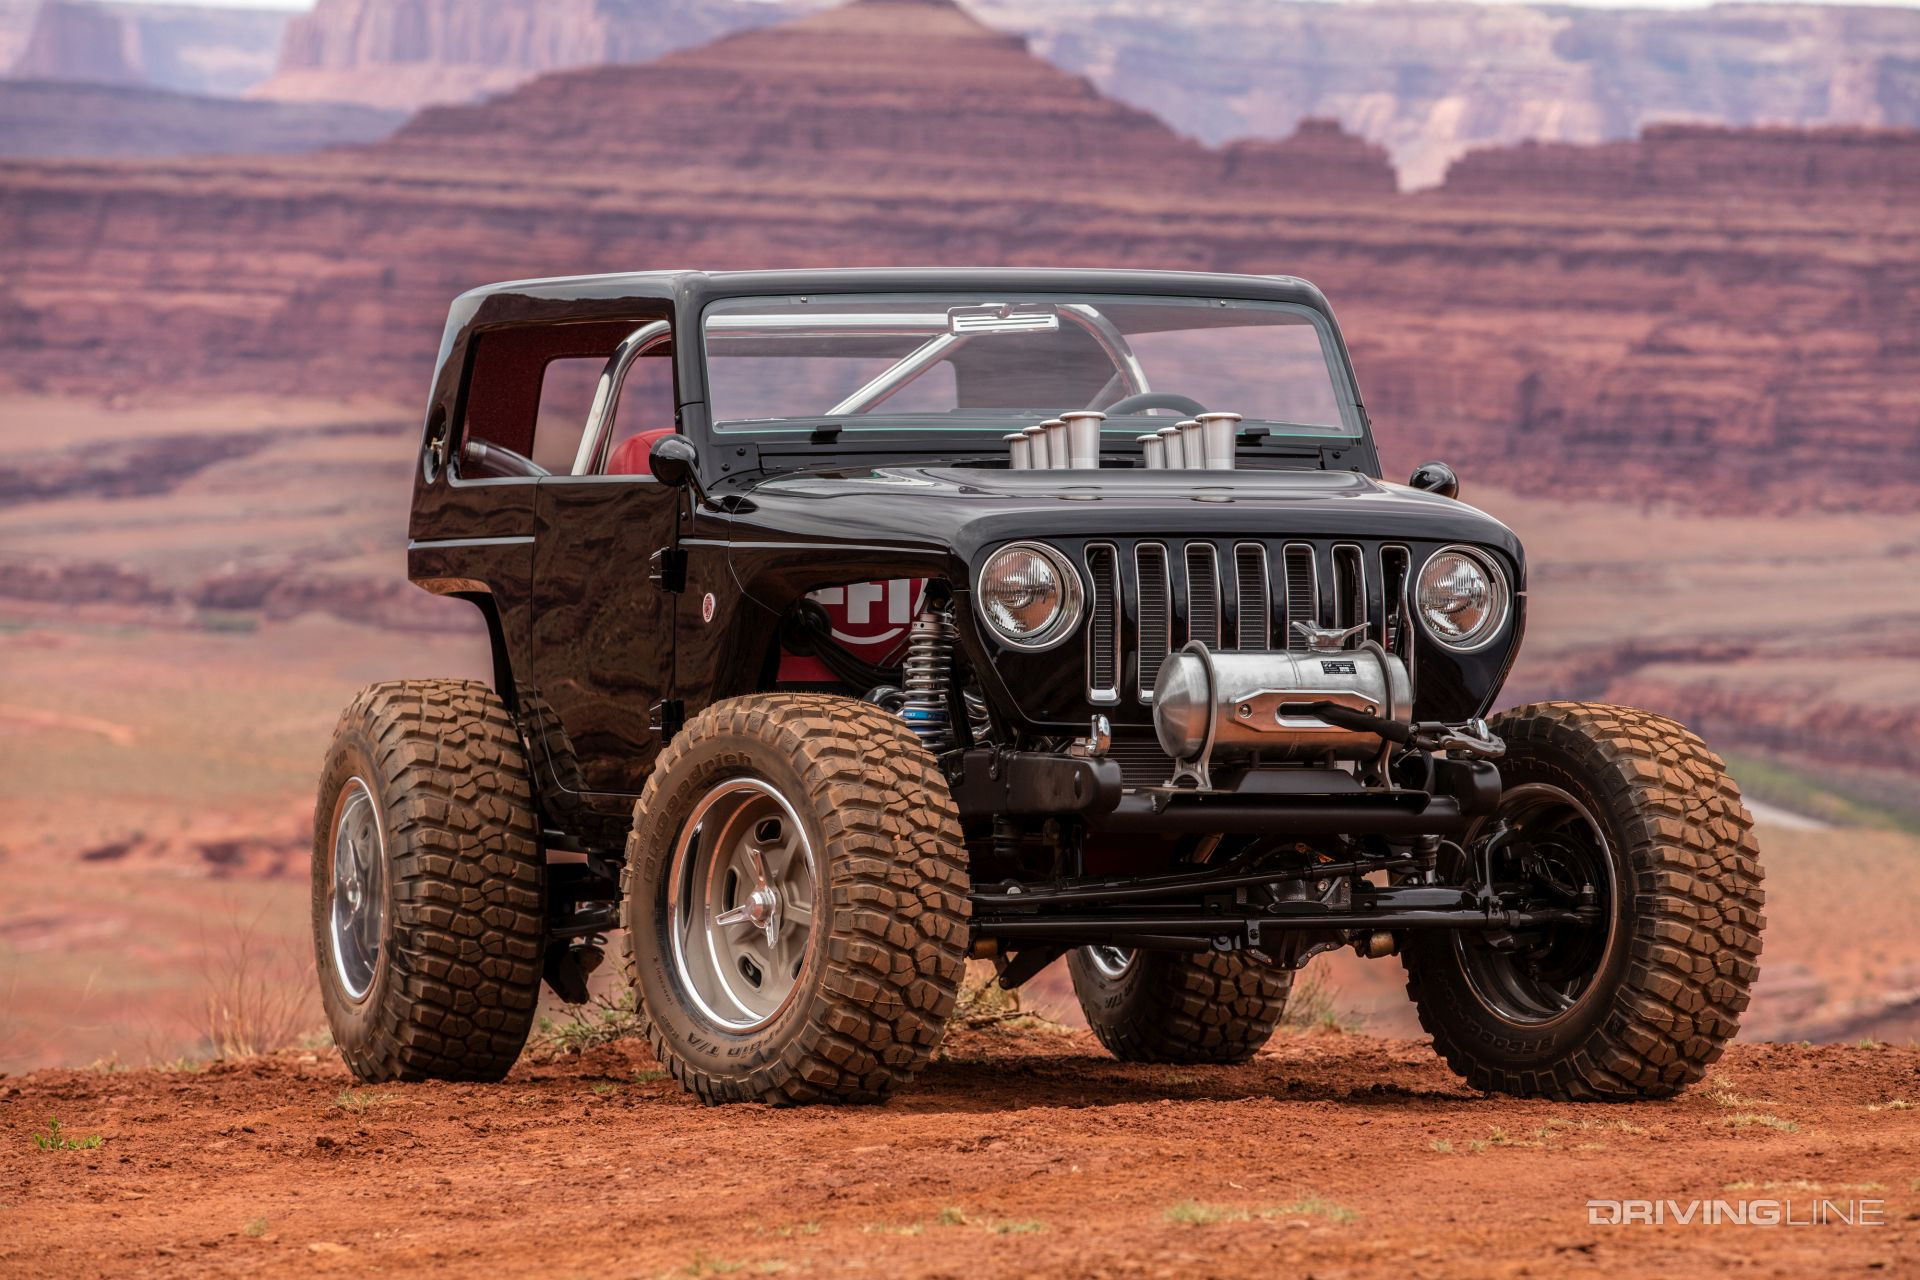 2017 Jeep Concept Vehicles >> 2017 Jeep Concept Vehicle Ride & Drive [Video] | DrivingLine